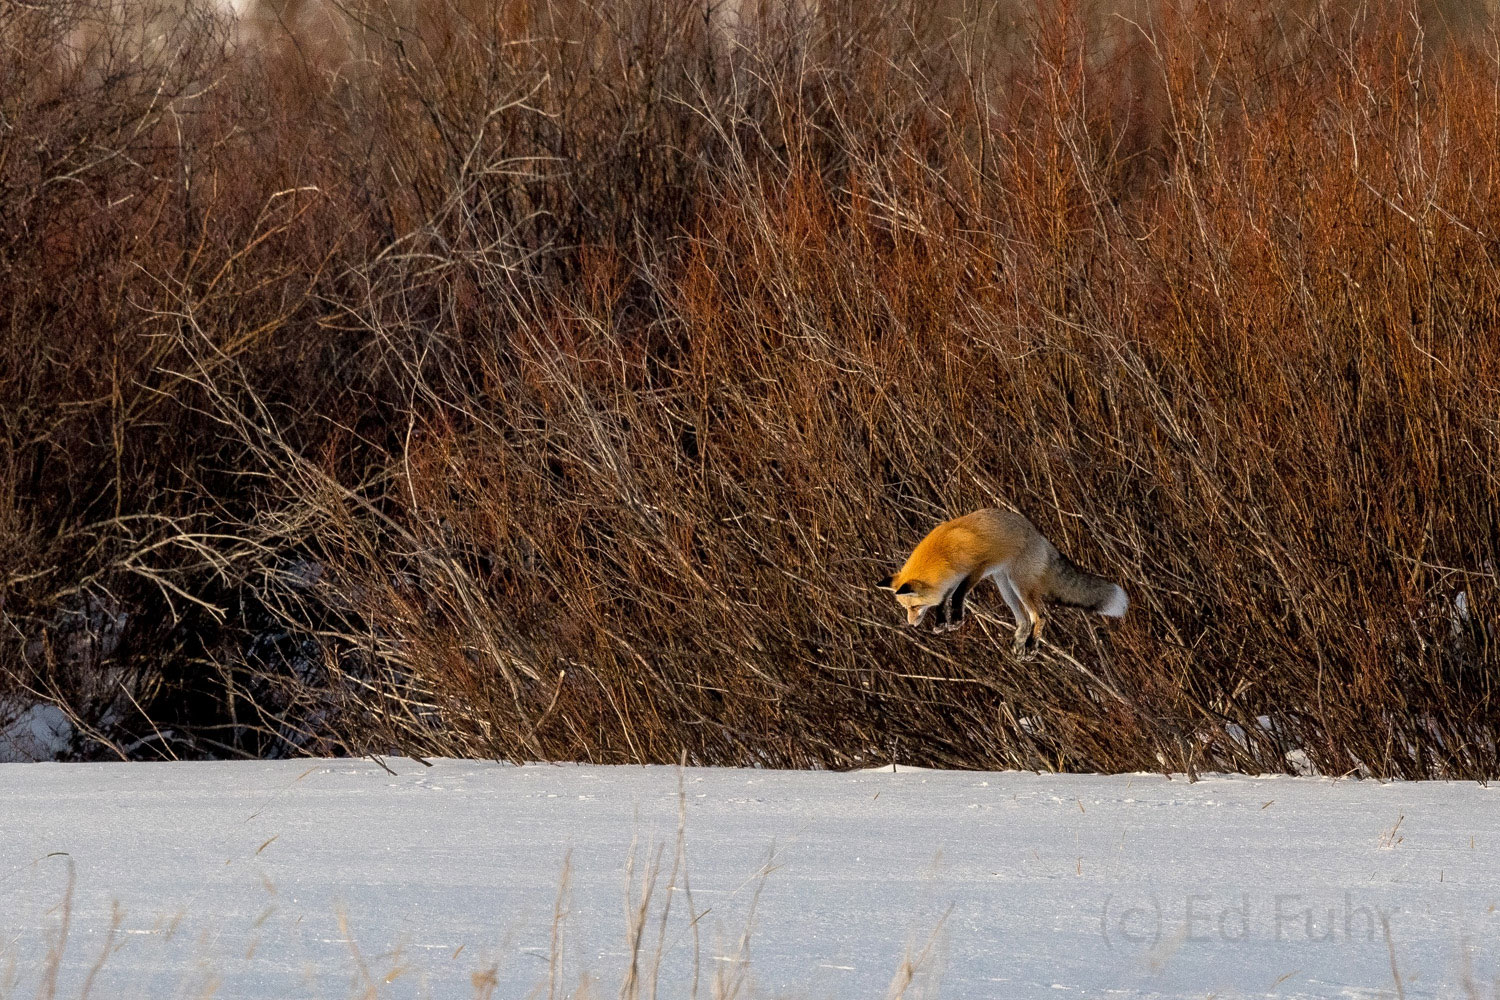 A red fox jumps high for food.  He has stood intently where he first detected motion below the deep meadow snow.  After locking...